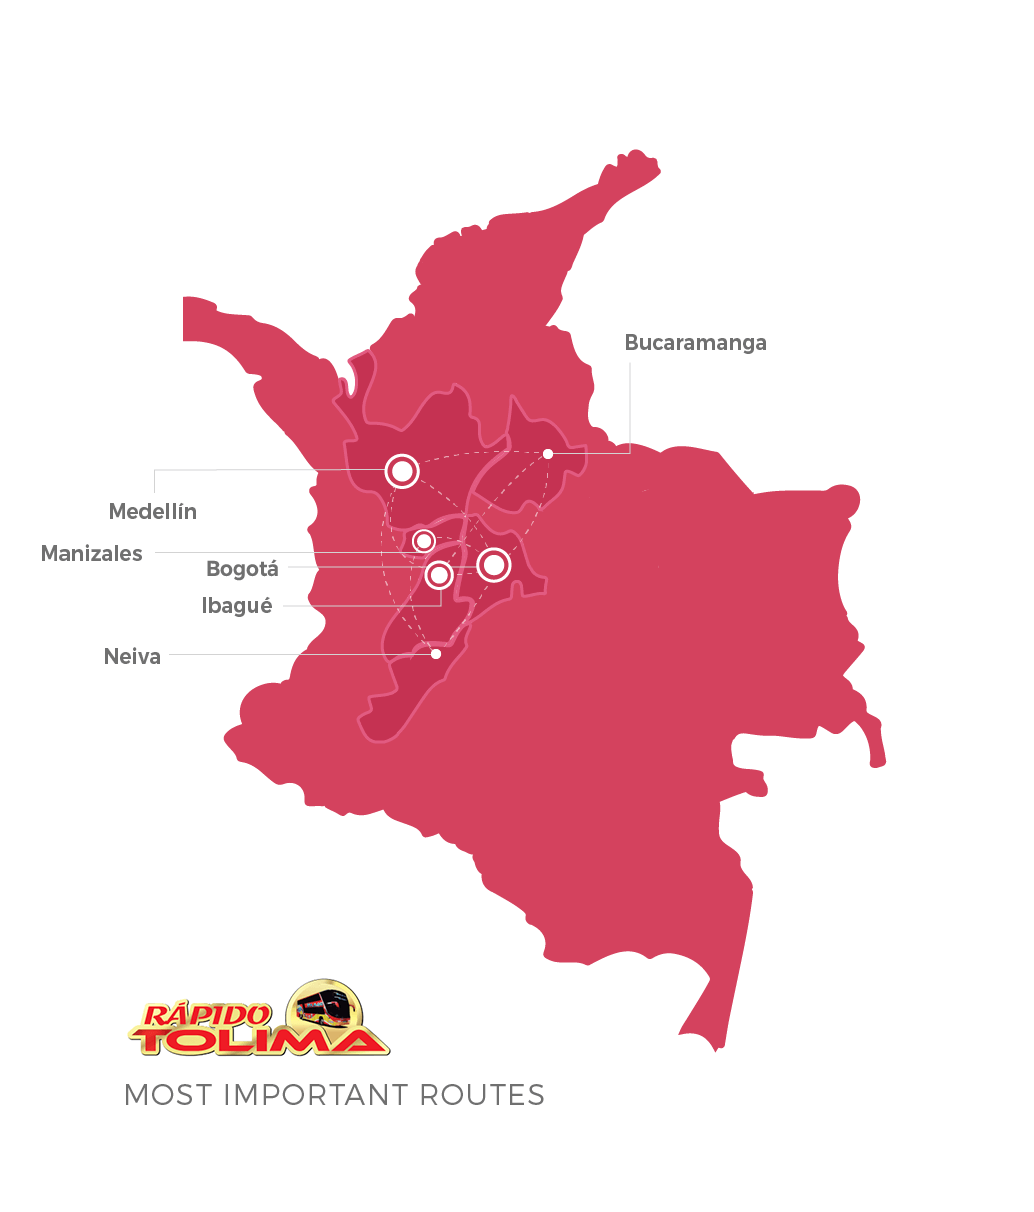 Rapido Tolima top destinations